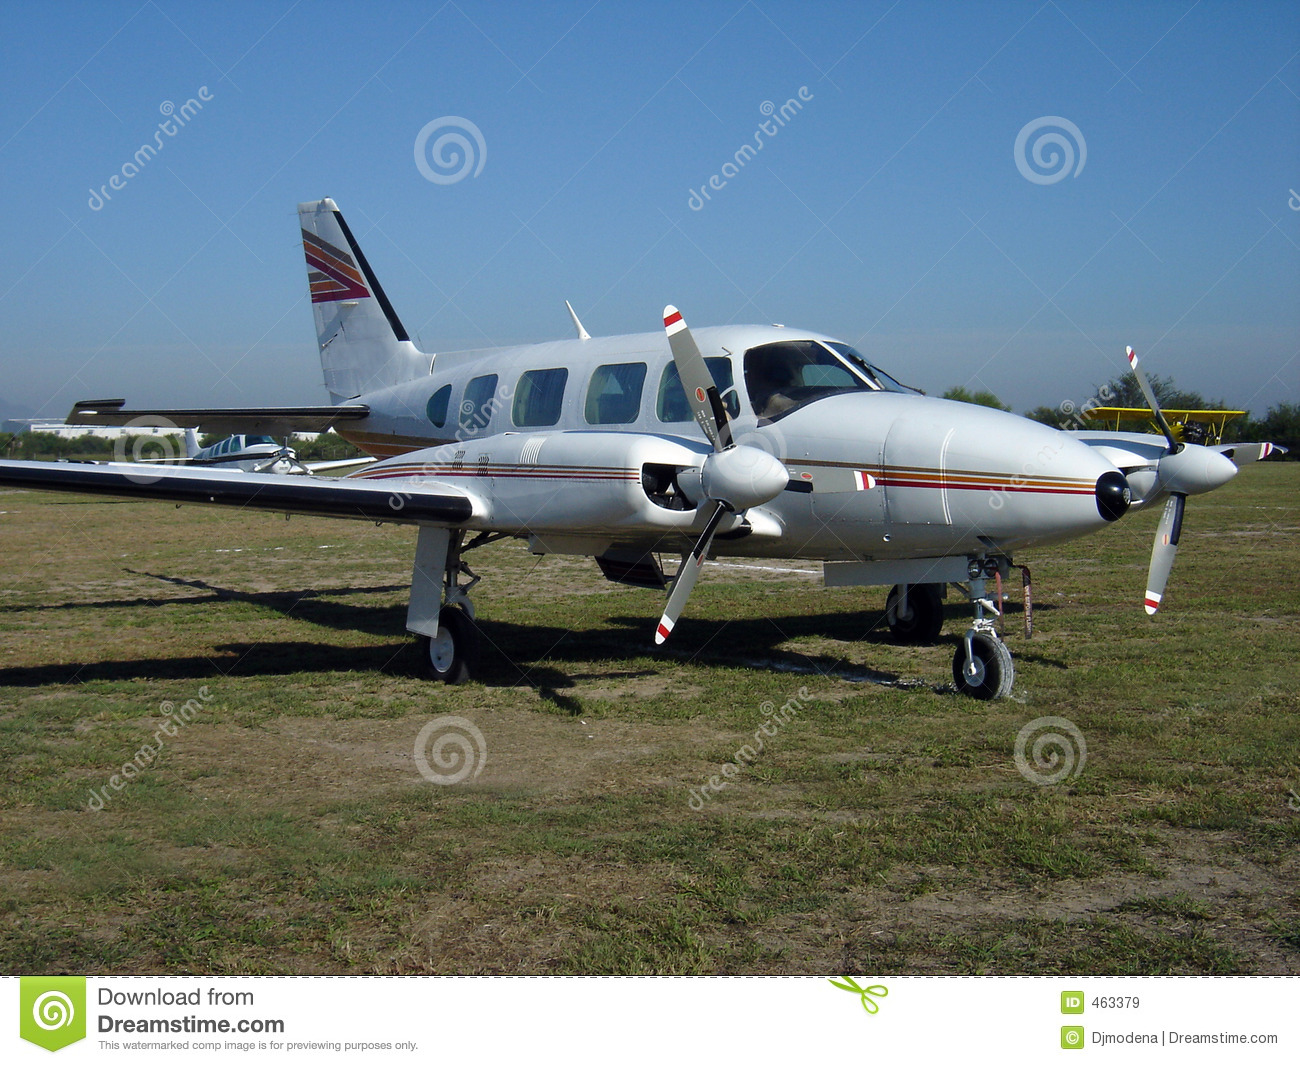 bimotor aircraft royalty free stock images image 463379 airplane clipart powerpoint airplane clipart cartoon